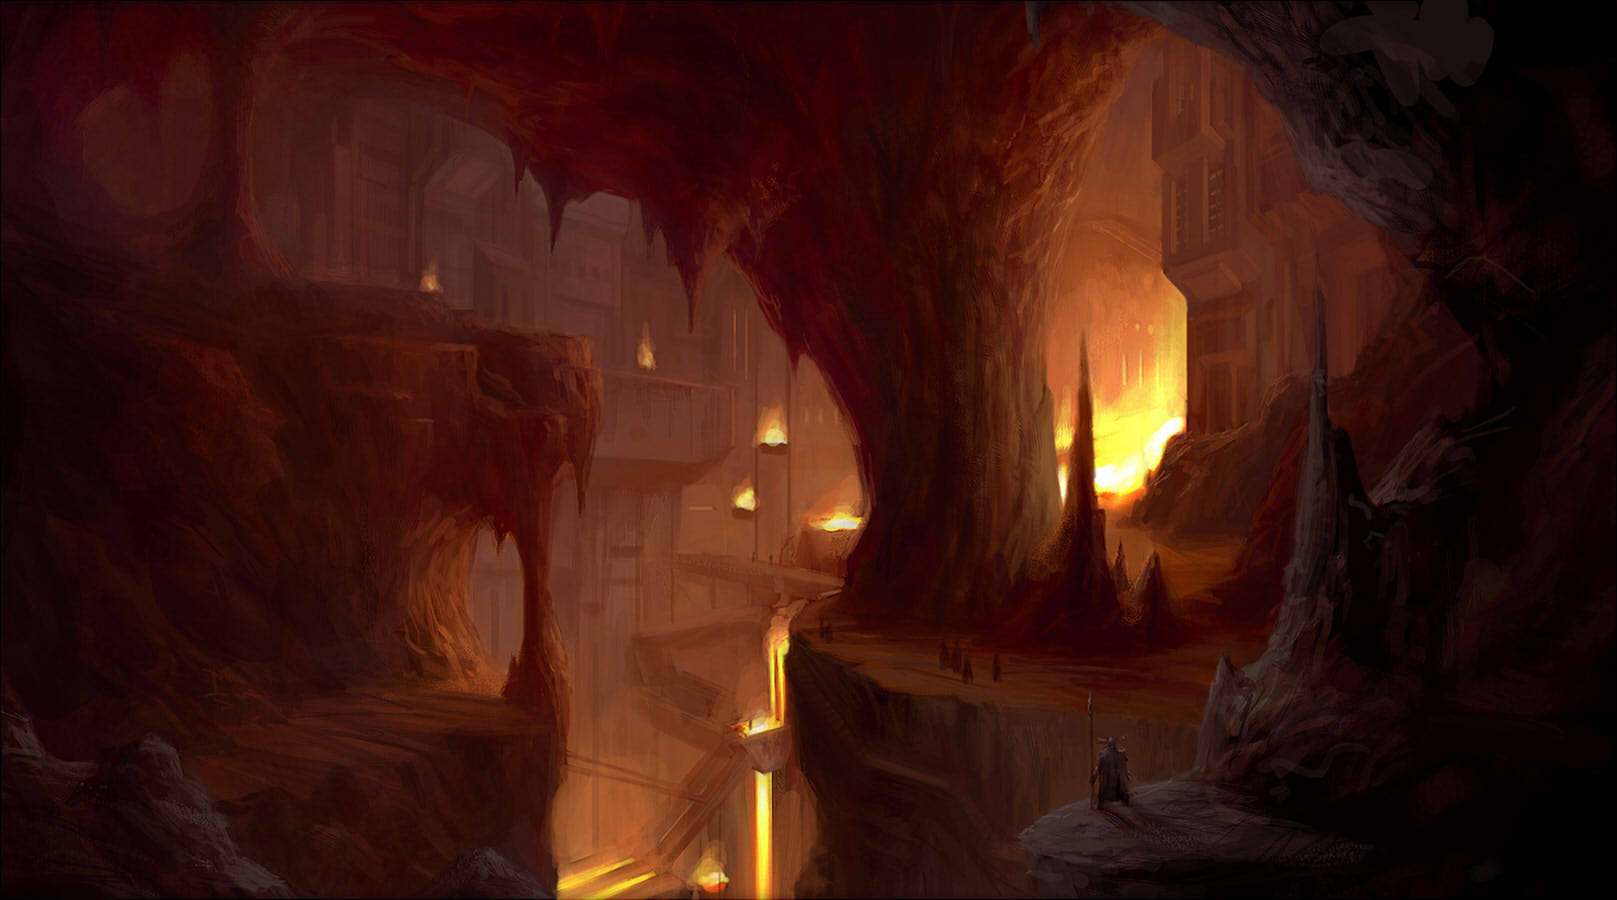 Drawn cavern dark cave City fantasy fantasy 1617x900 of